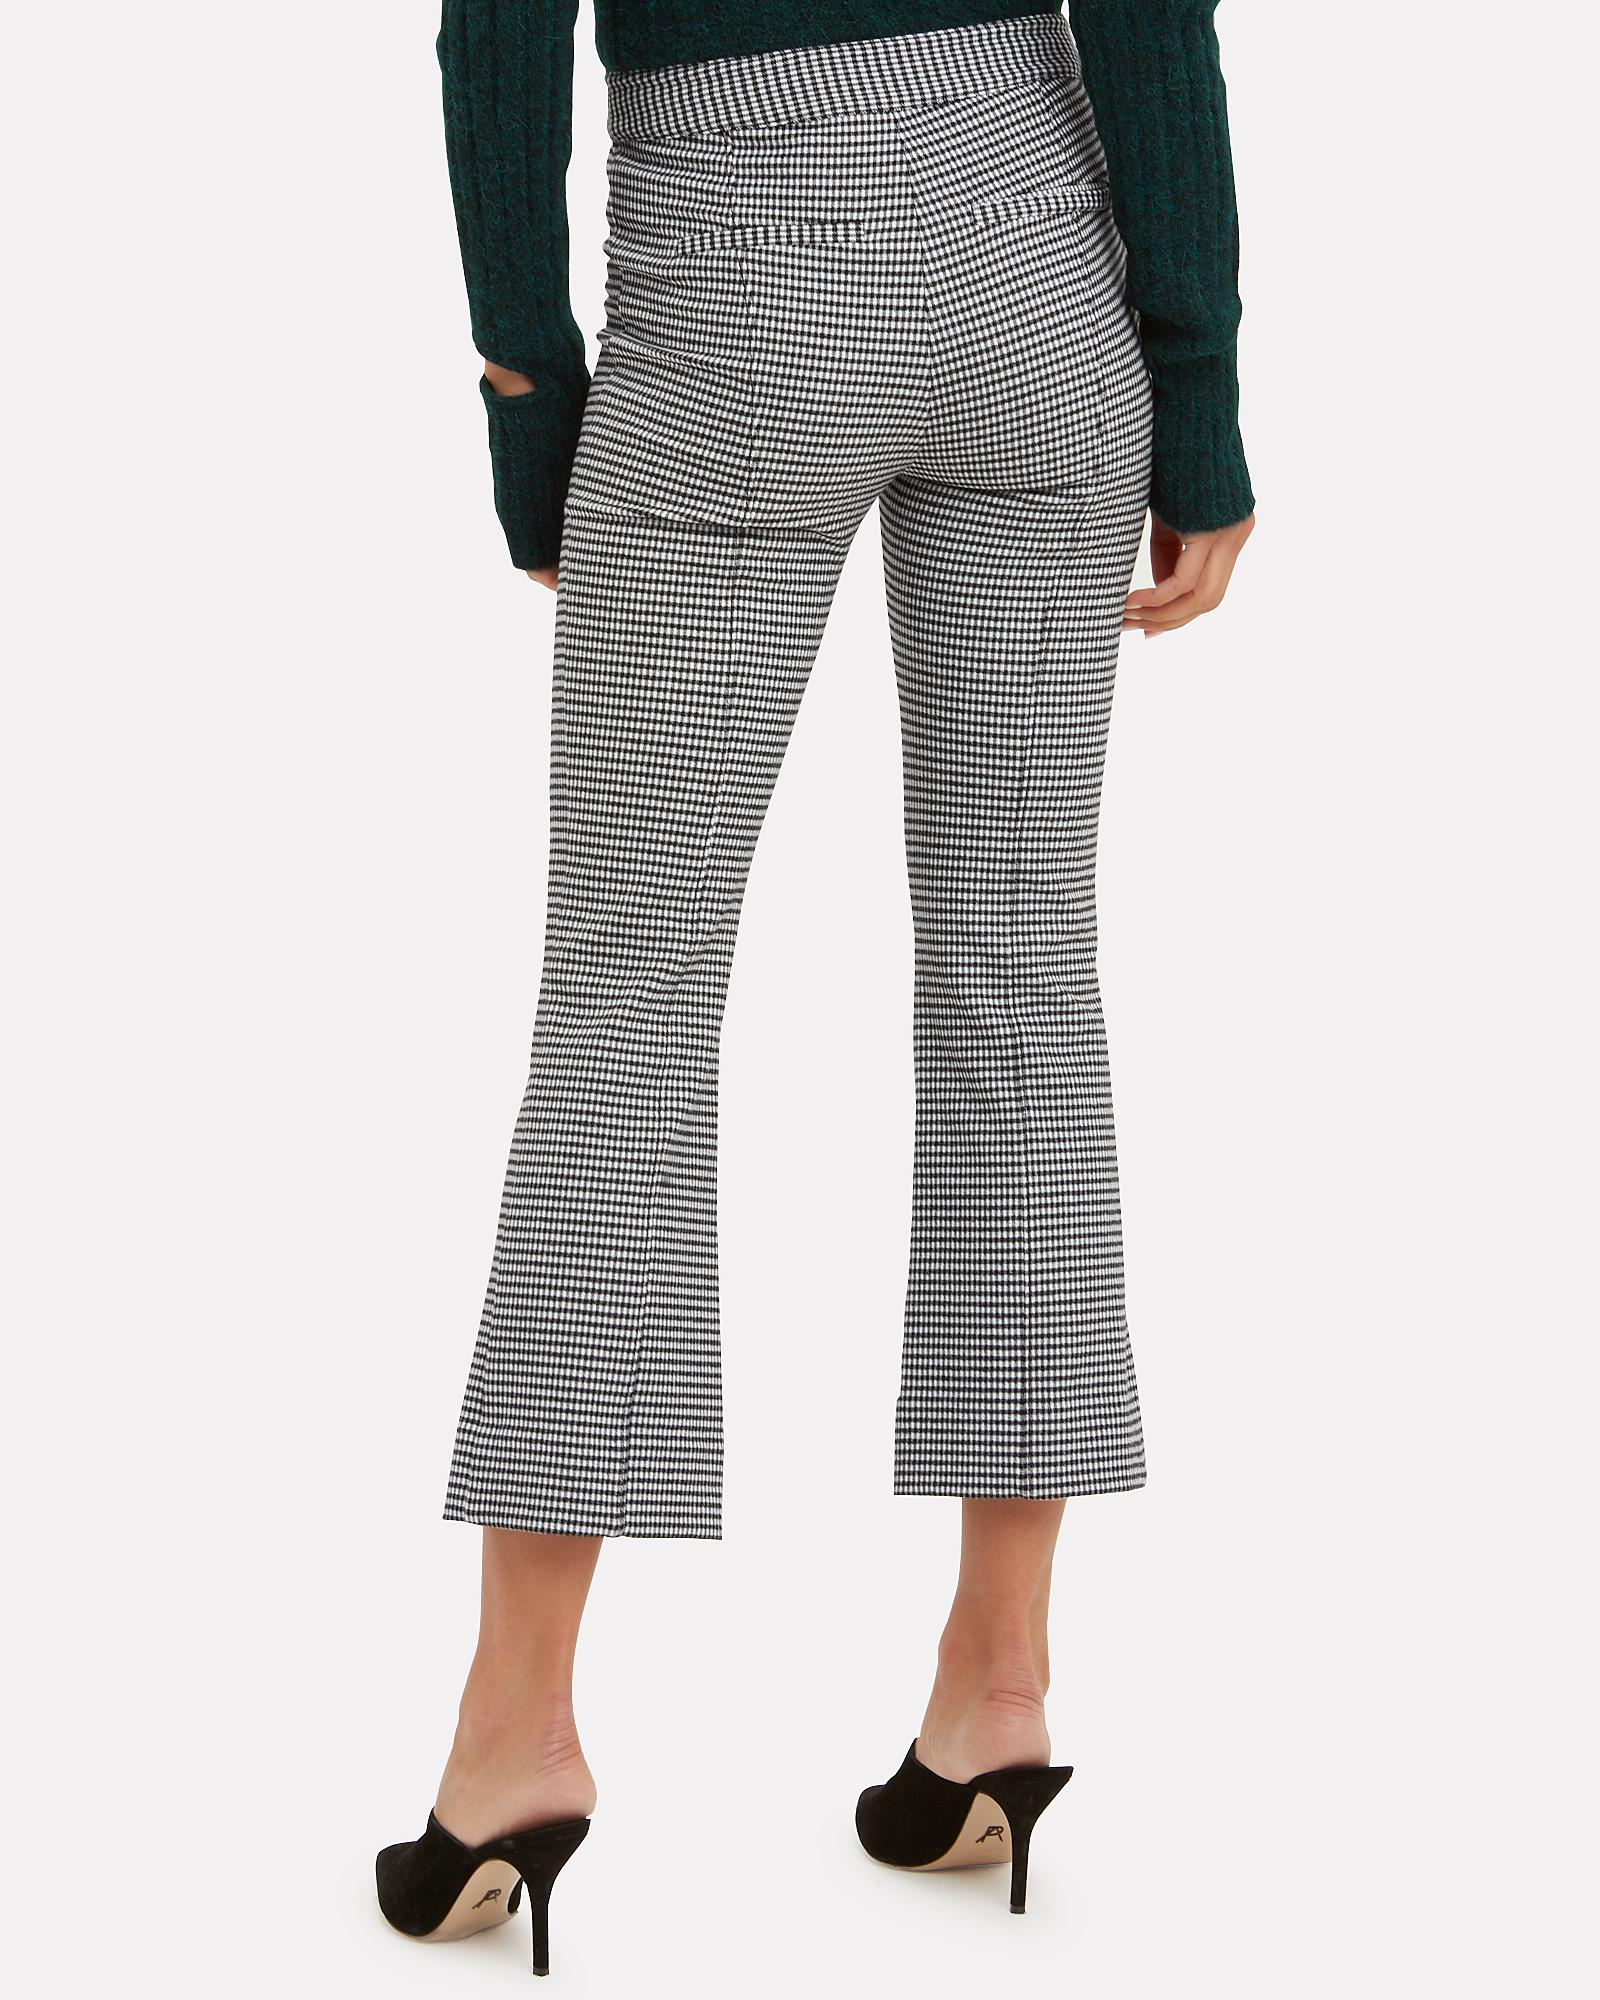 78c0ee51242a3 10 Crosby Derek Lam Houndstooth Cropped Flare Trousers Blk/wht 10 in ...